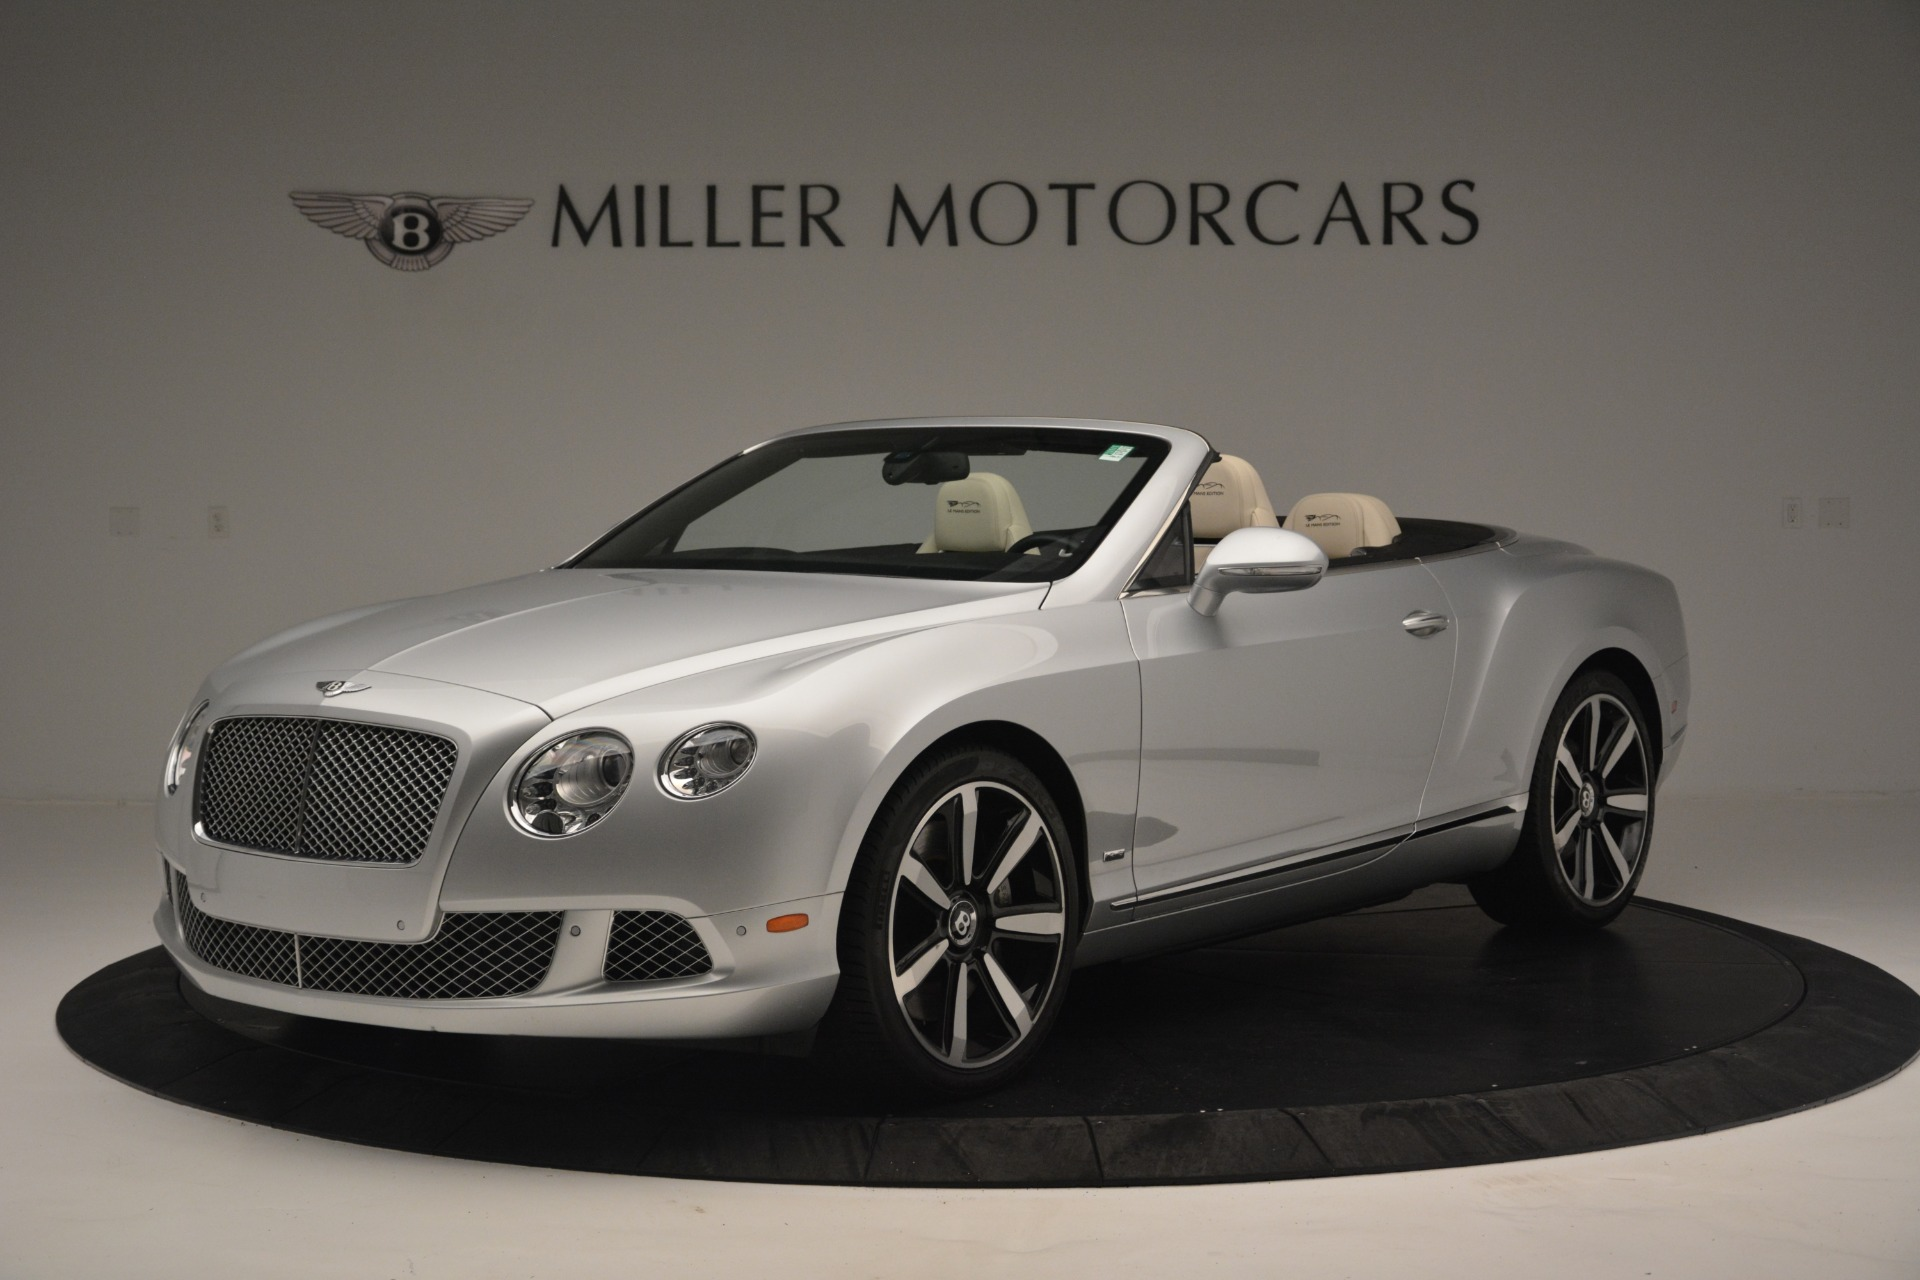 Used 2013 Bentley Continental GT W12 Le Mans Edition For Sale In Westport, CT 2519_p2